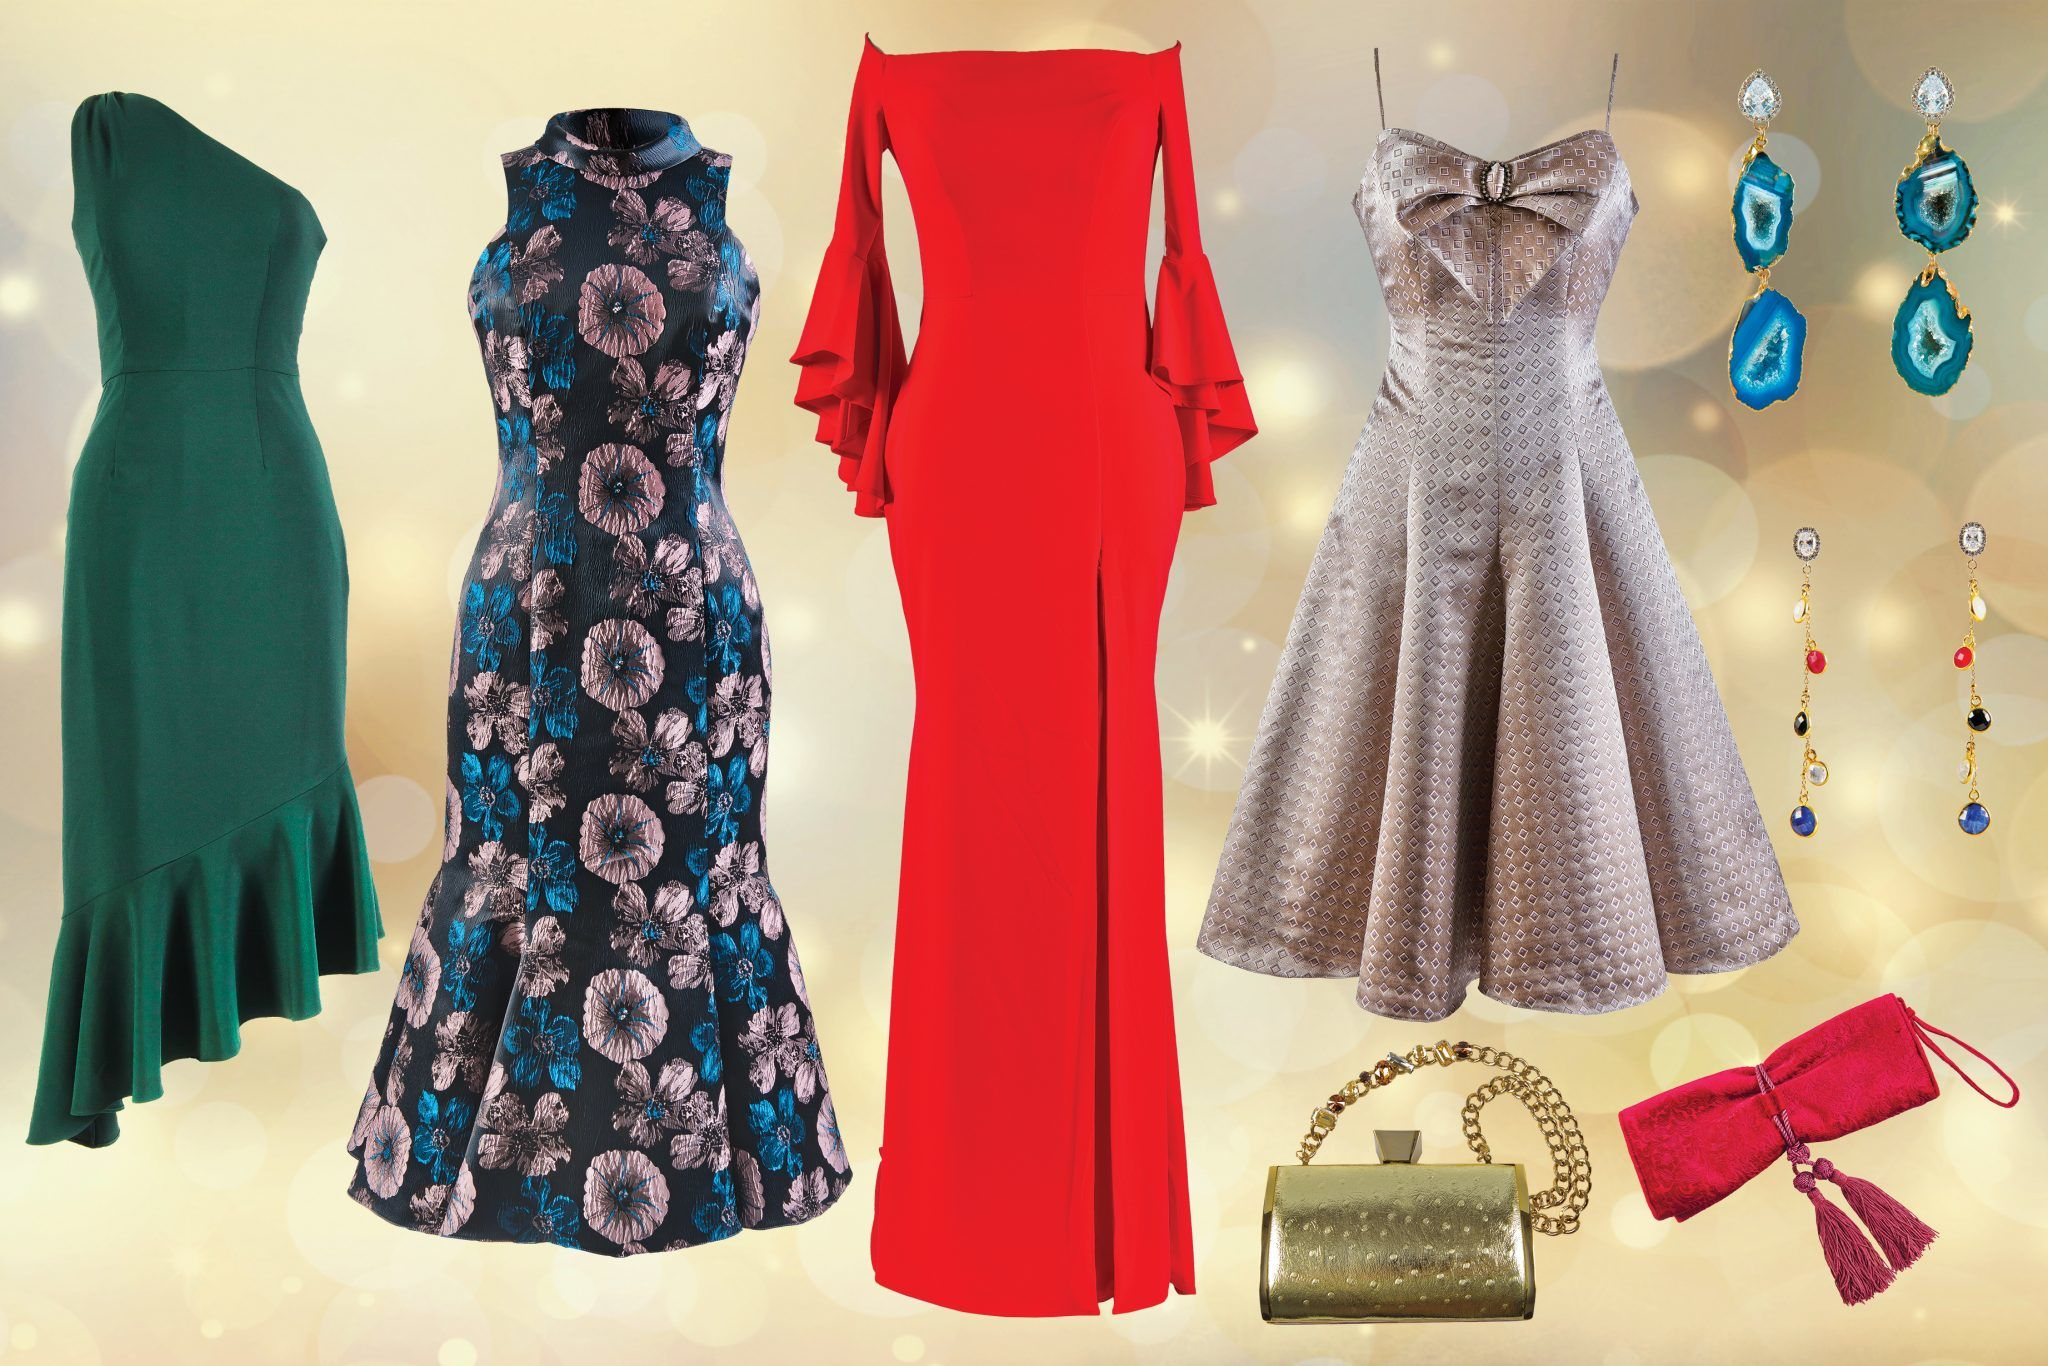 Stand out in party dresses bold in color and personality